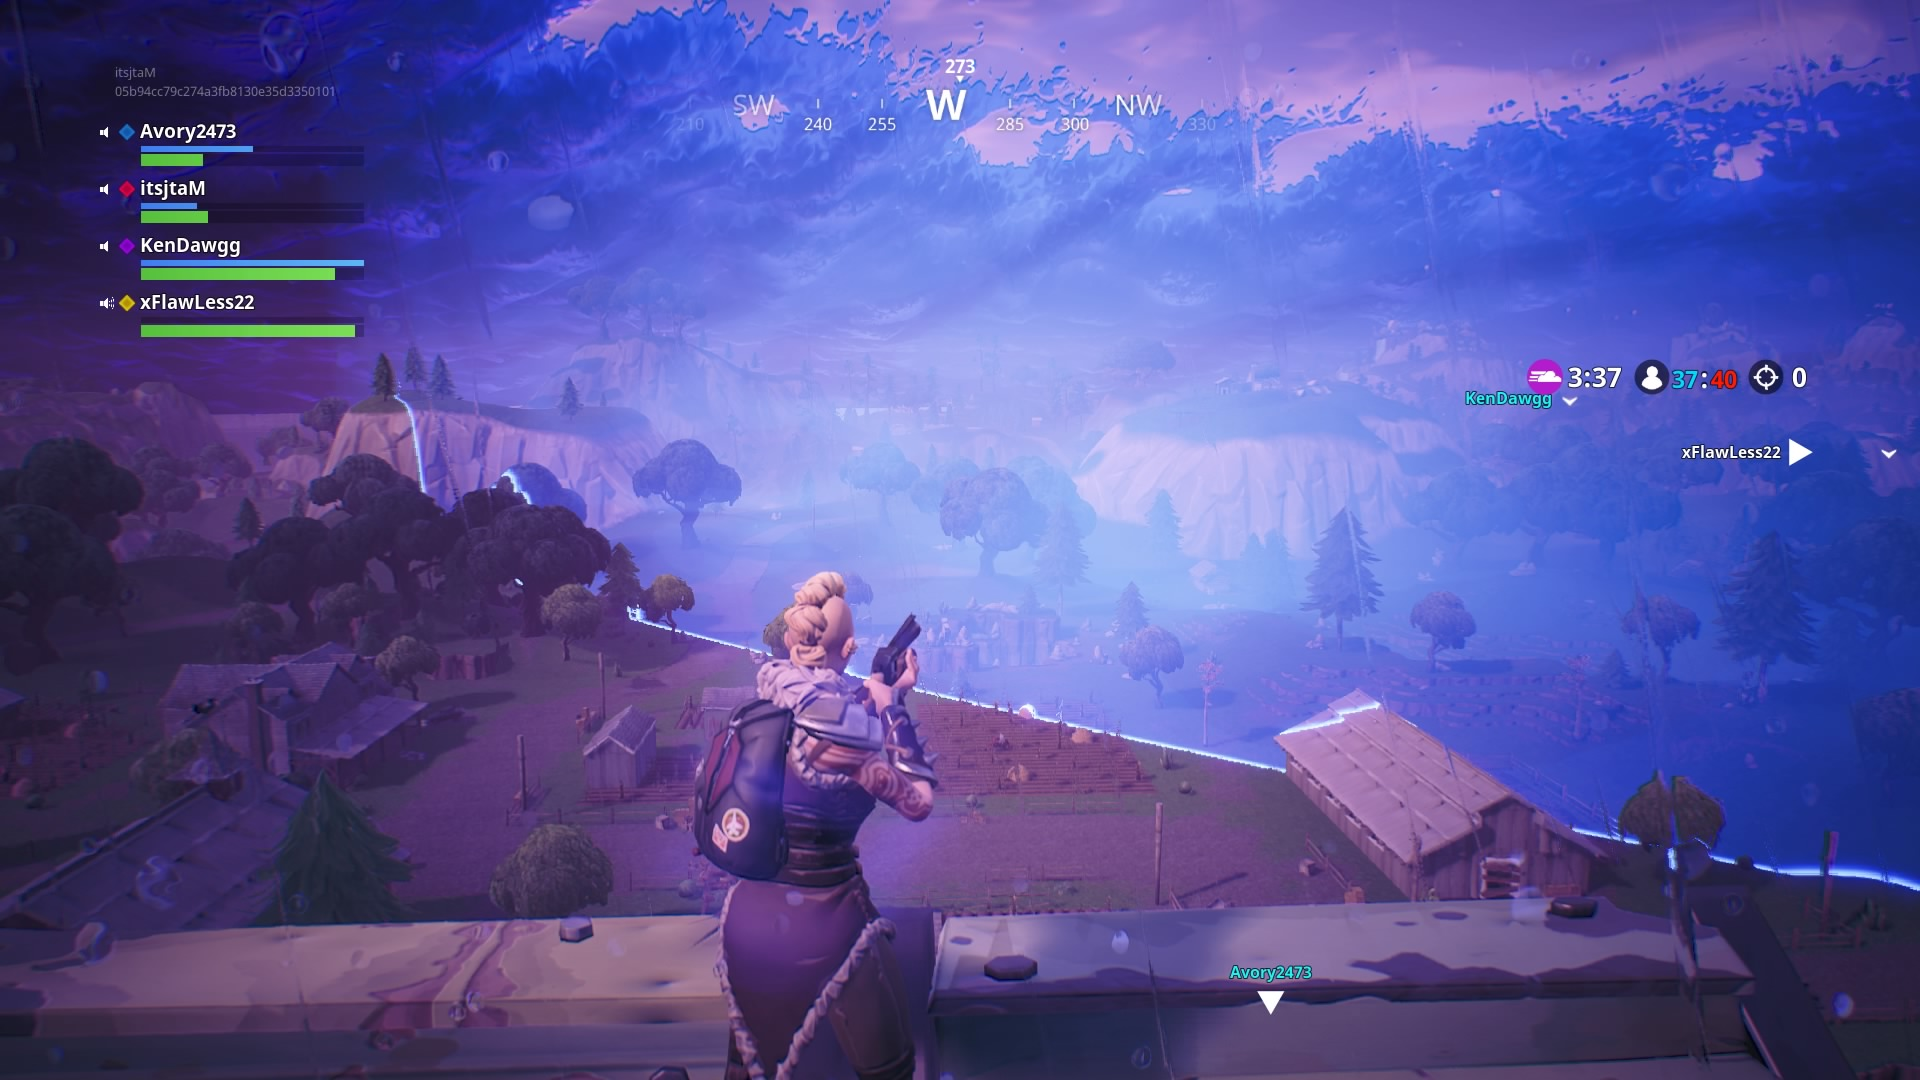 fortnite launch pad storm widescreen computer background 1454